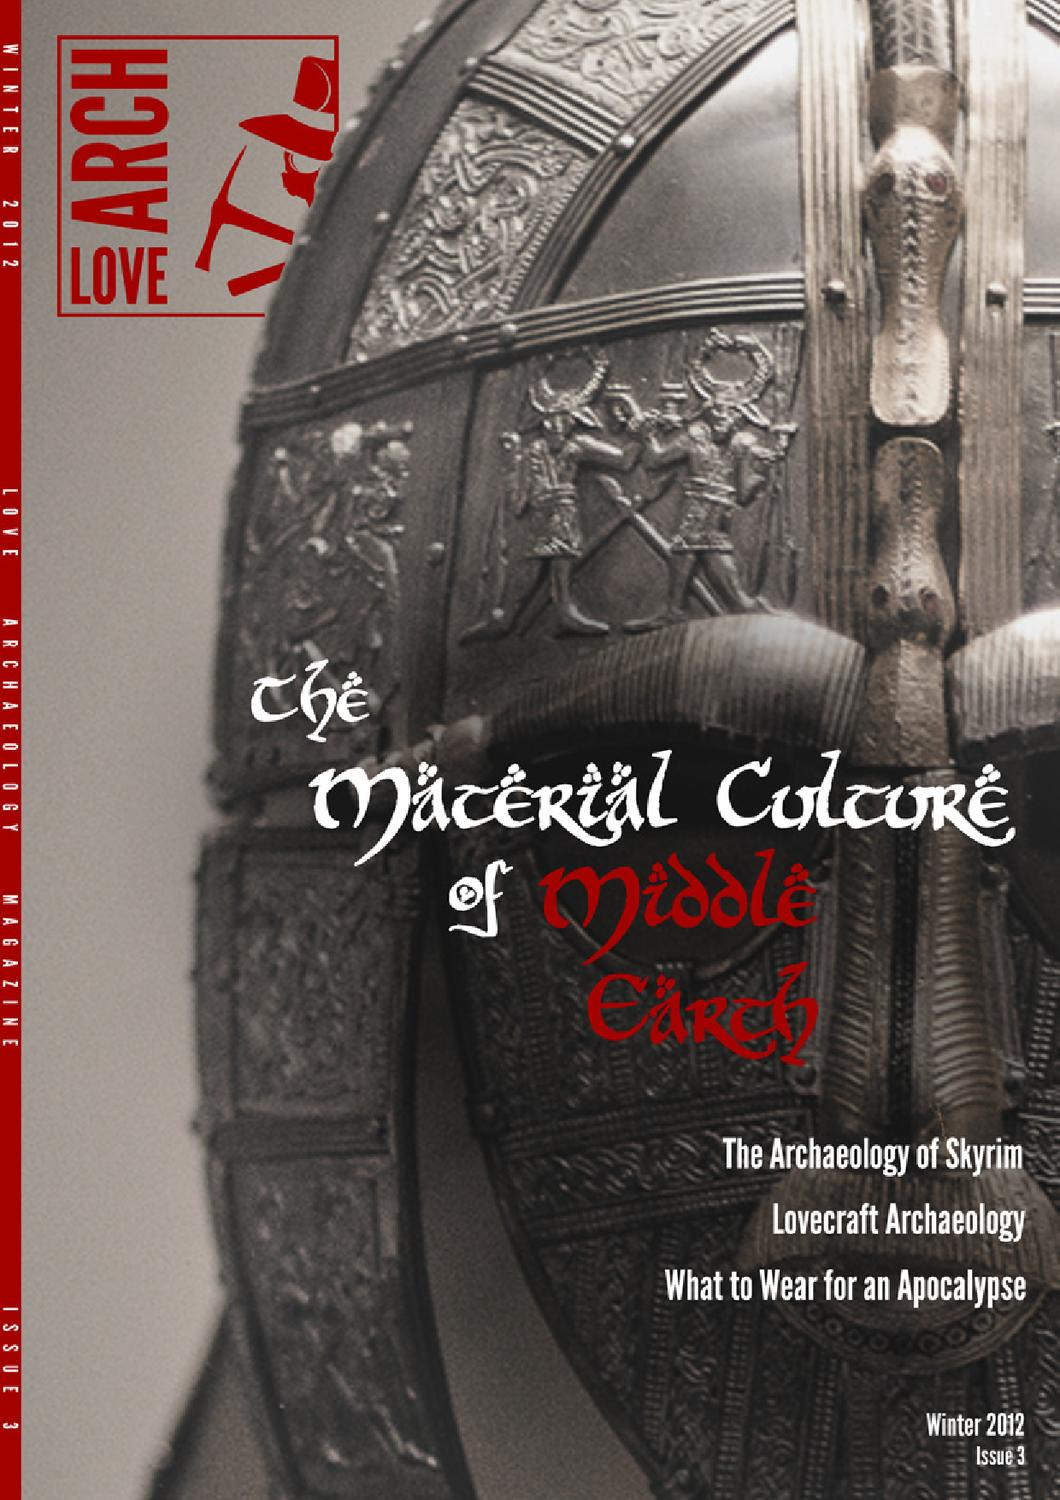 Love Archaeology Magazine, Issue 3, Winter 2012 by Love